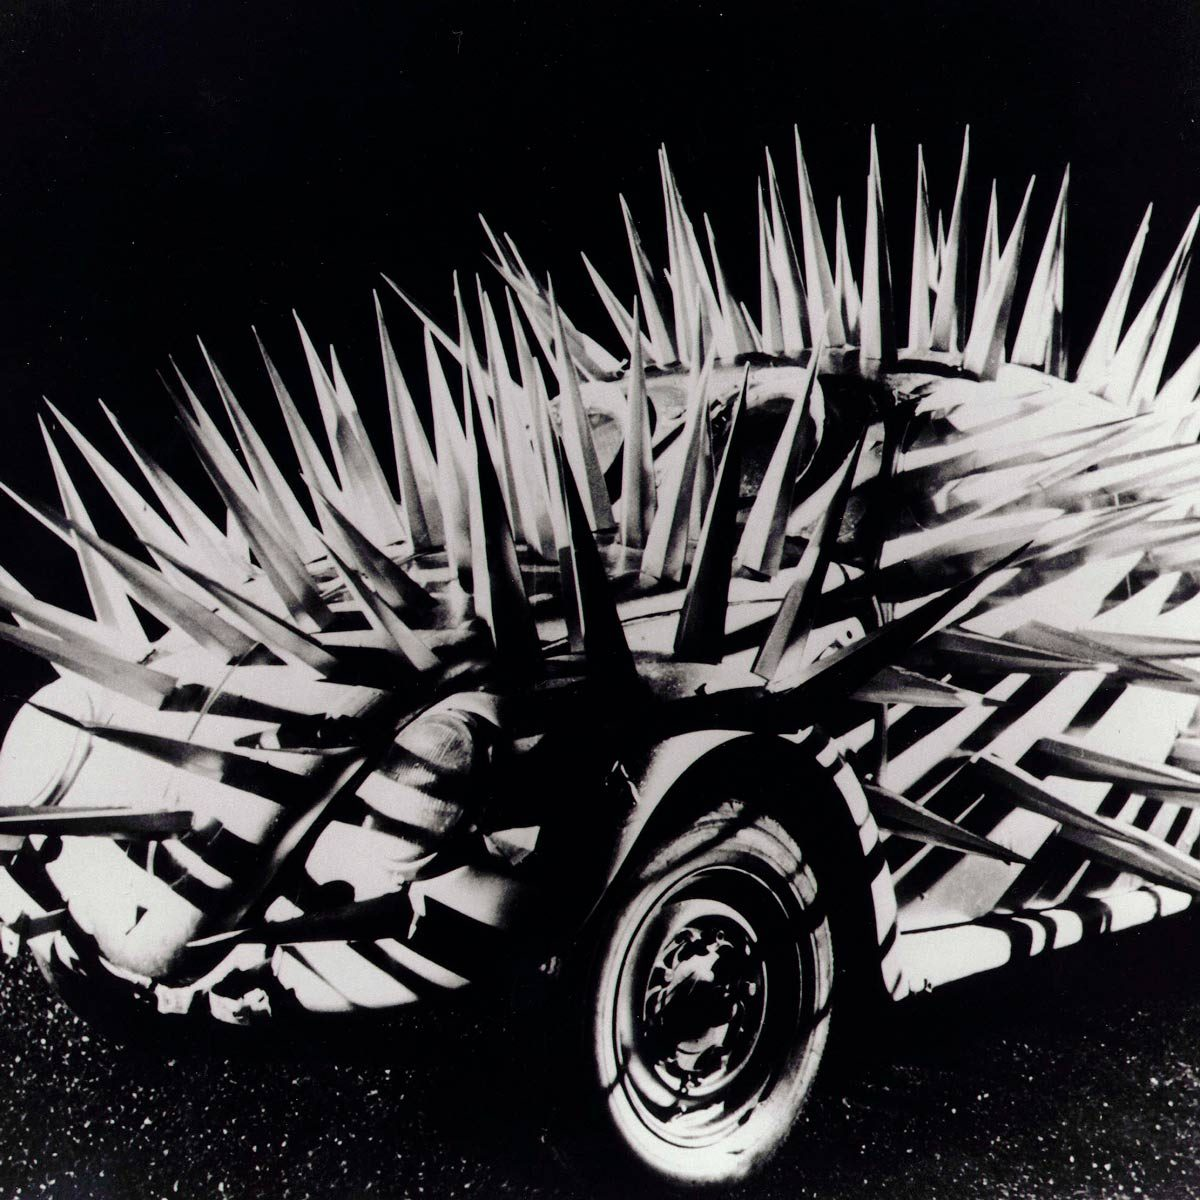 VW Beetle with spikes from the movie The Cars that Ate Paris